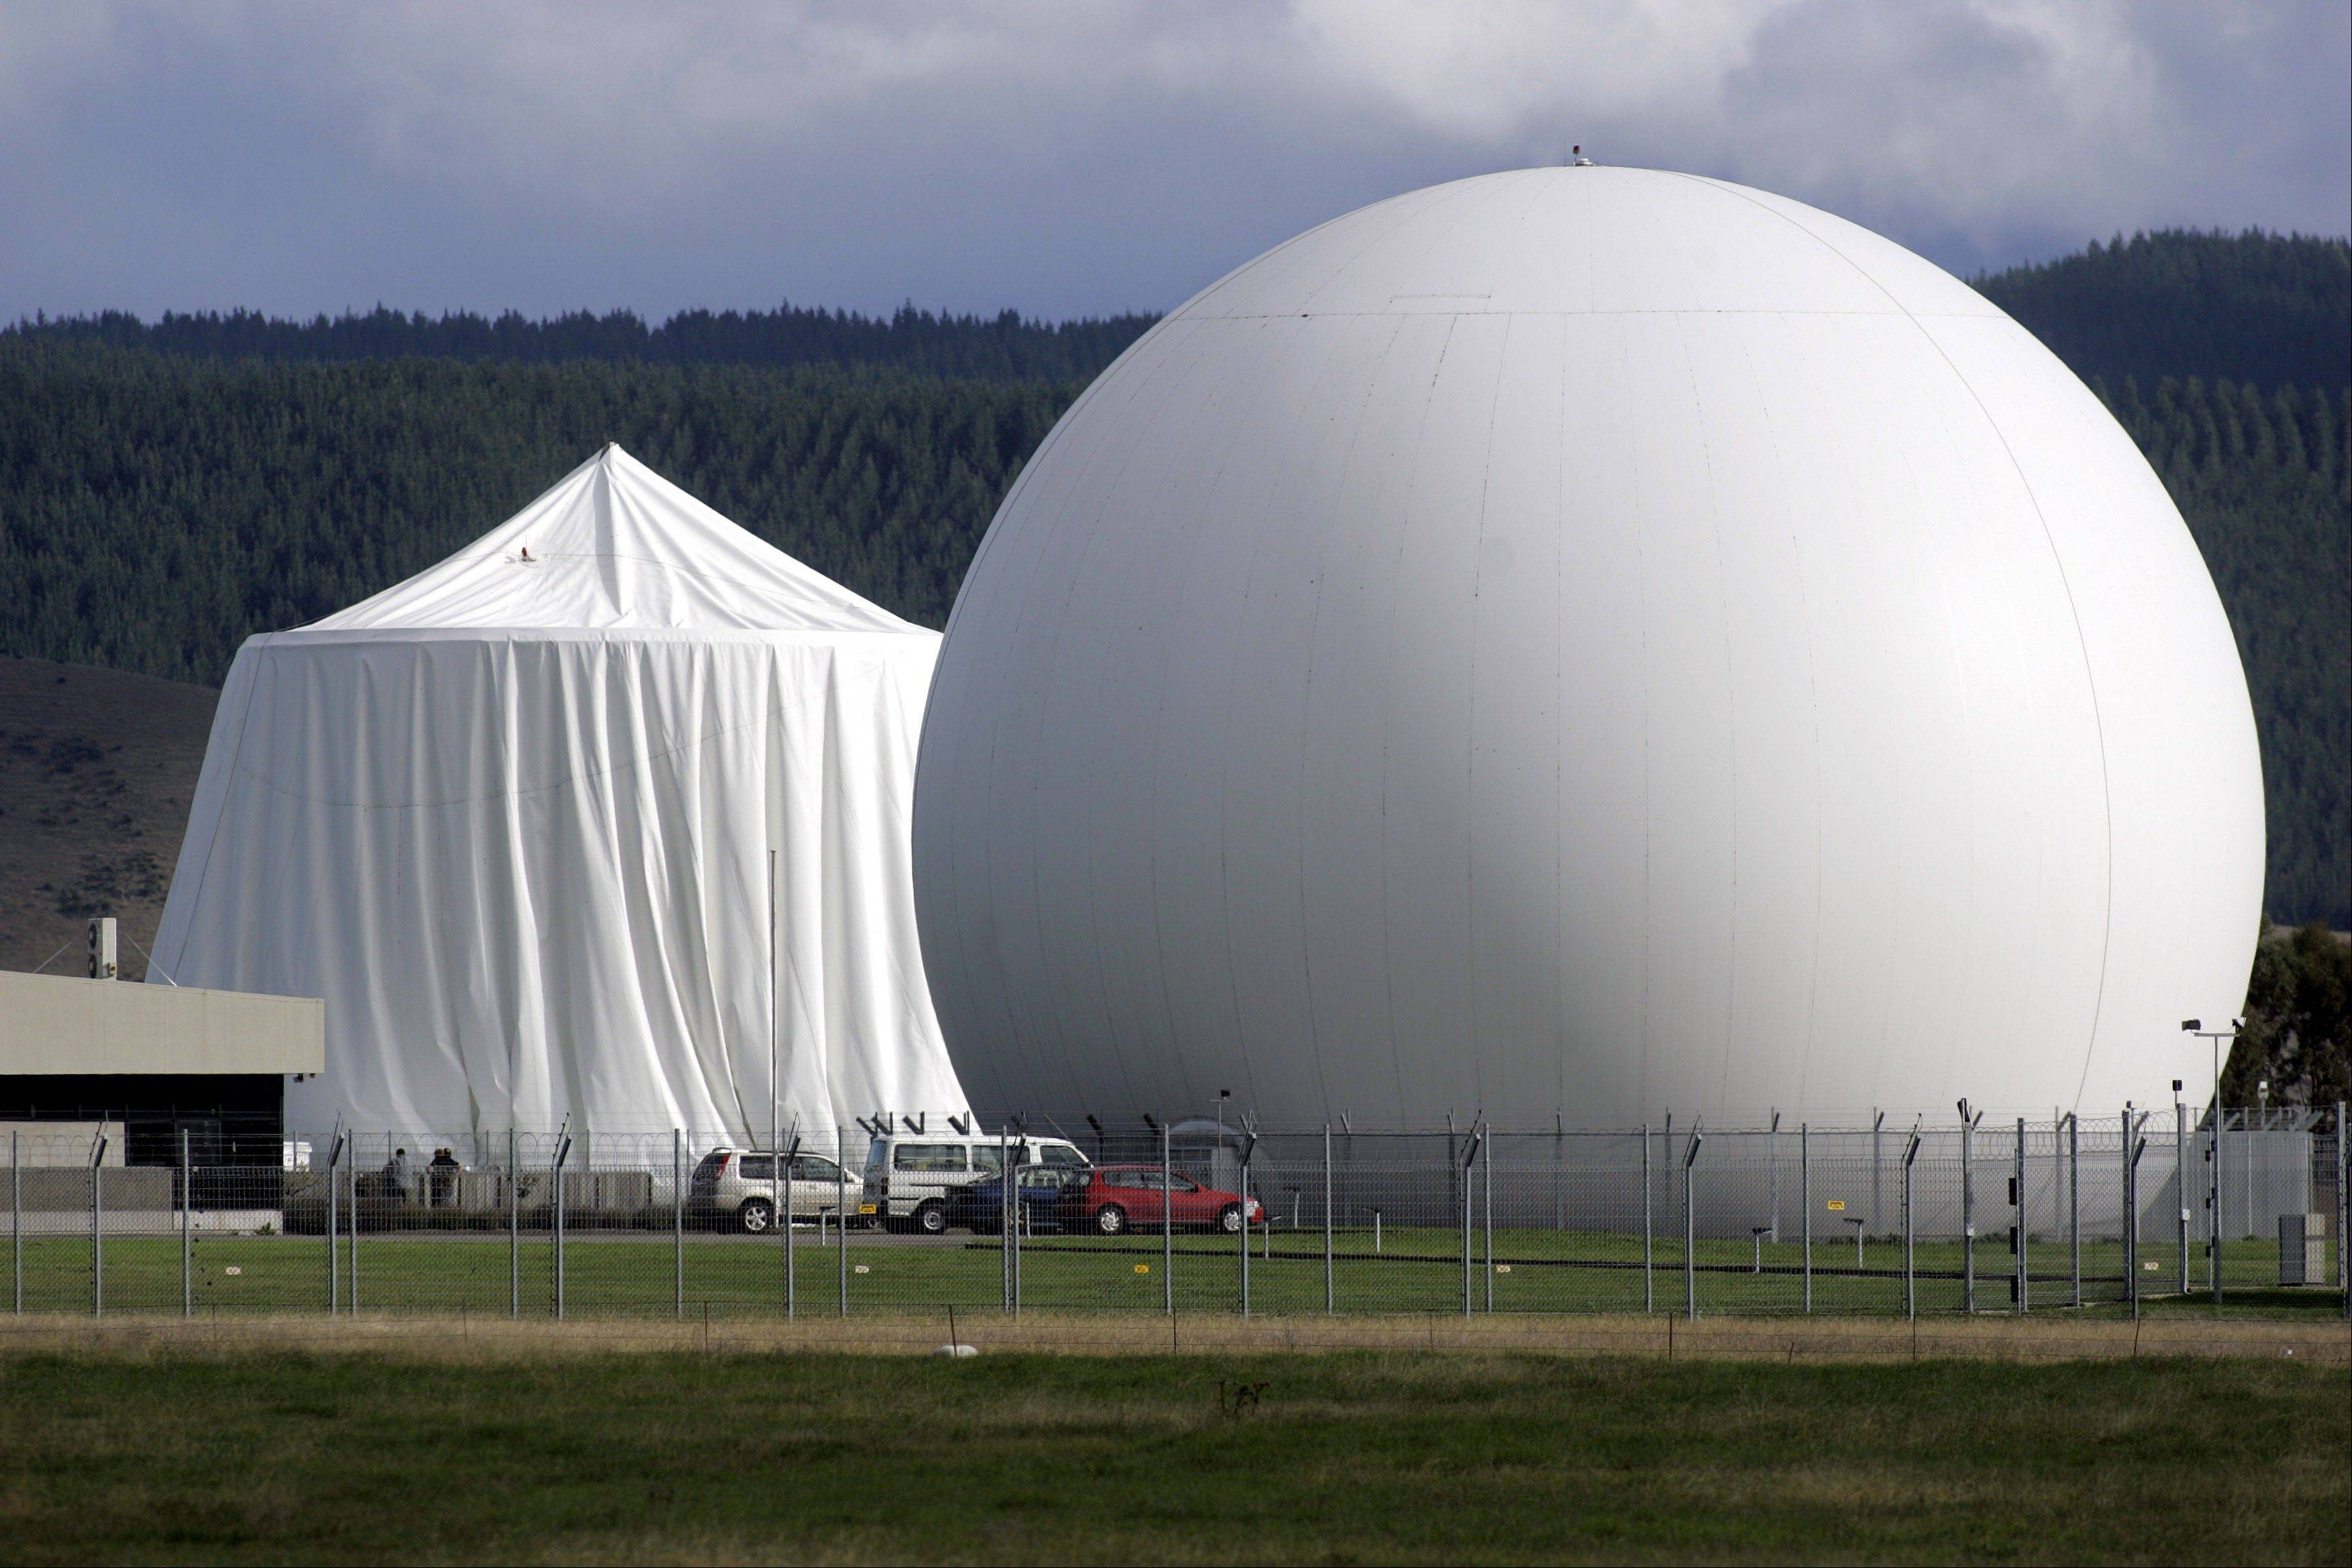 This photo from 2008 shows a satellite communications dome at Waihopai satellite communications interception station near Blenheim, New Zealand. Waihopai satellite communications is part of a surveillance spying alliance known as Five Eyes that groups together five English-speaking democracies — the U.S., Britain, Canada, Australia and New Zealand.